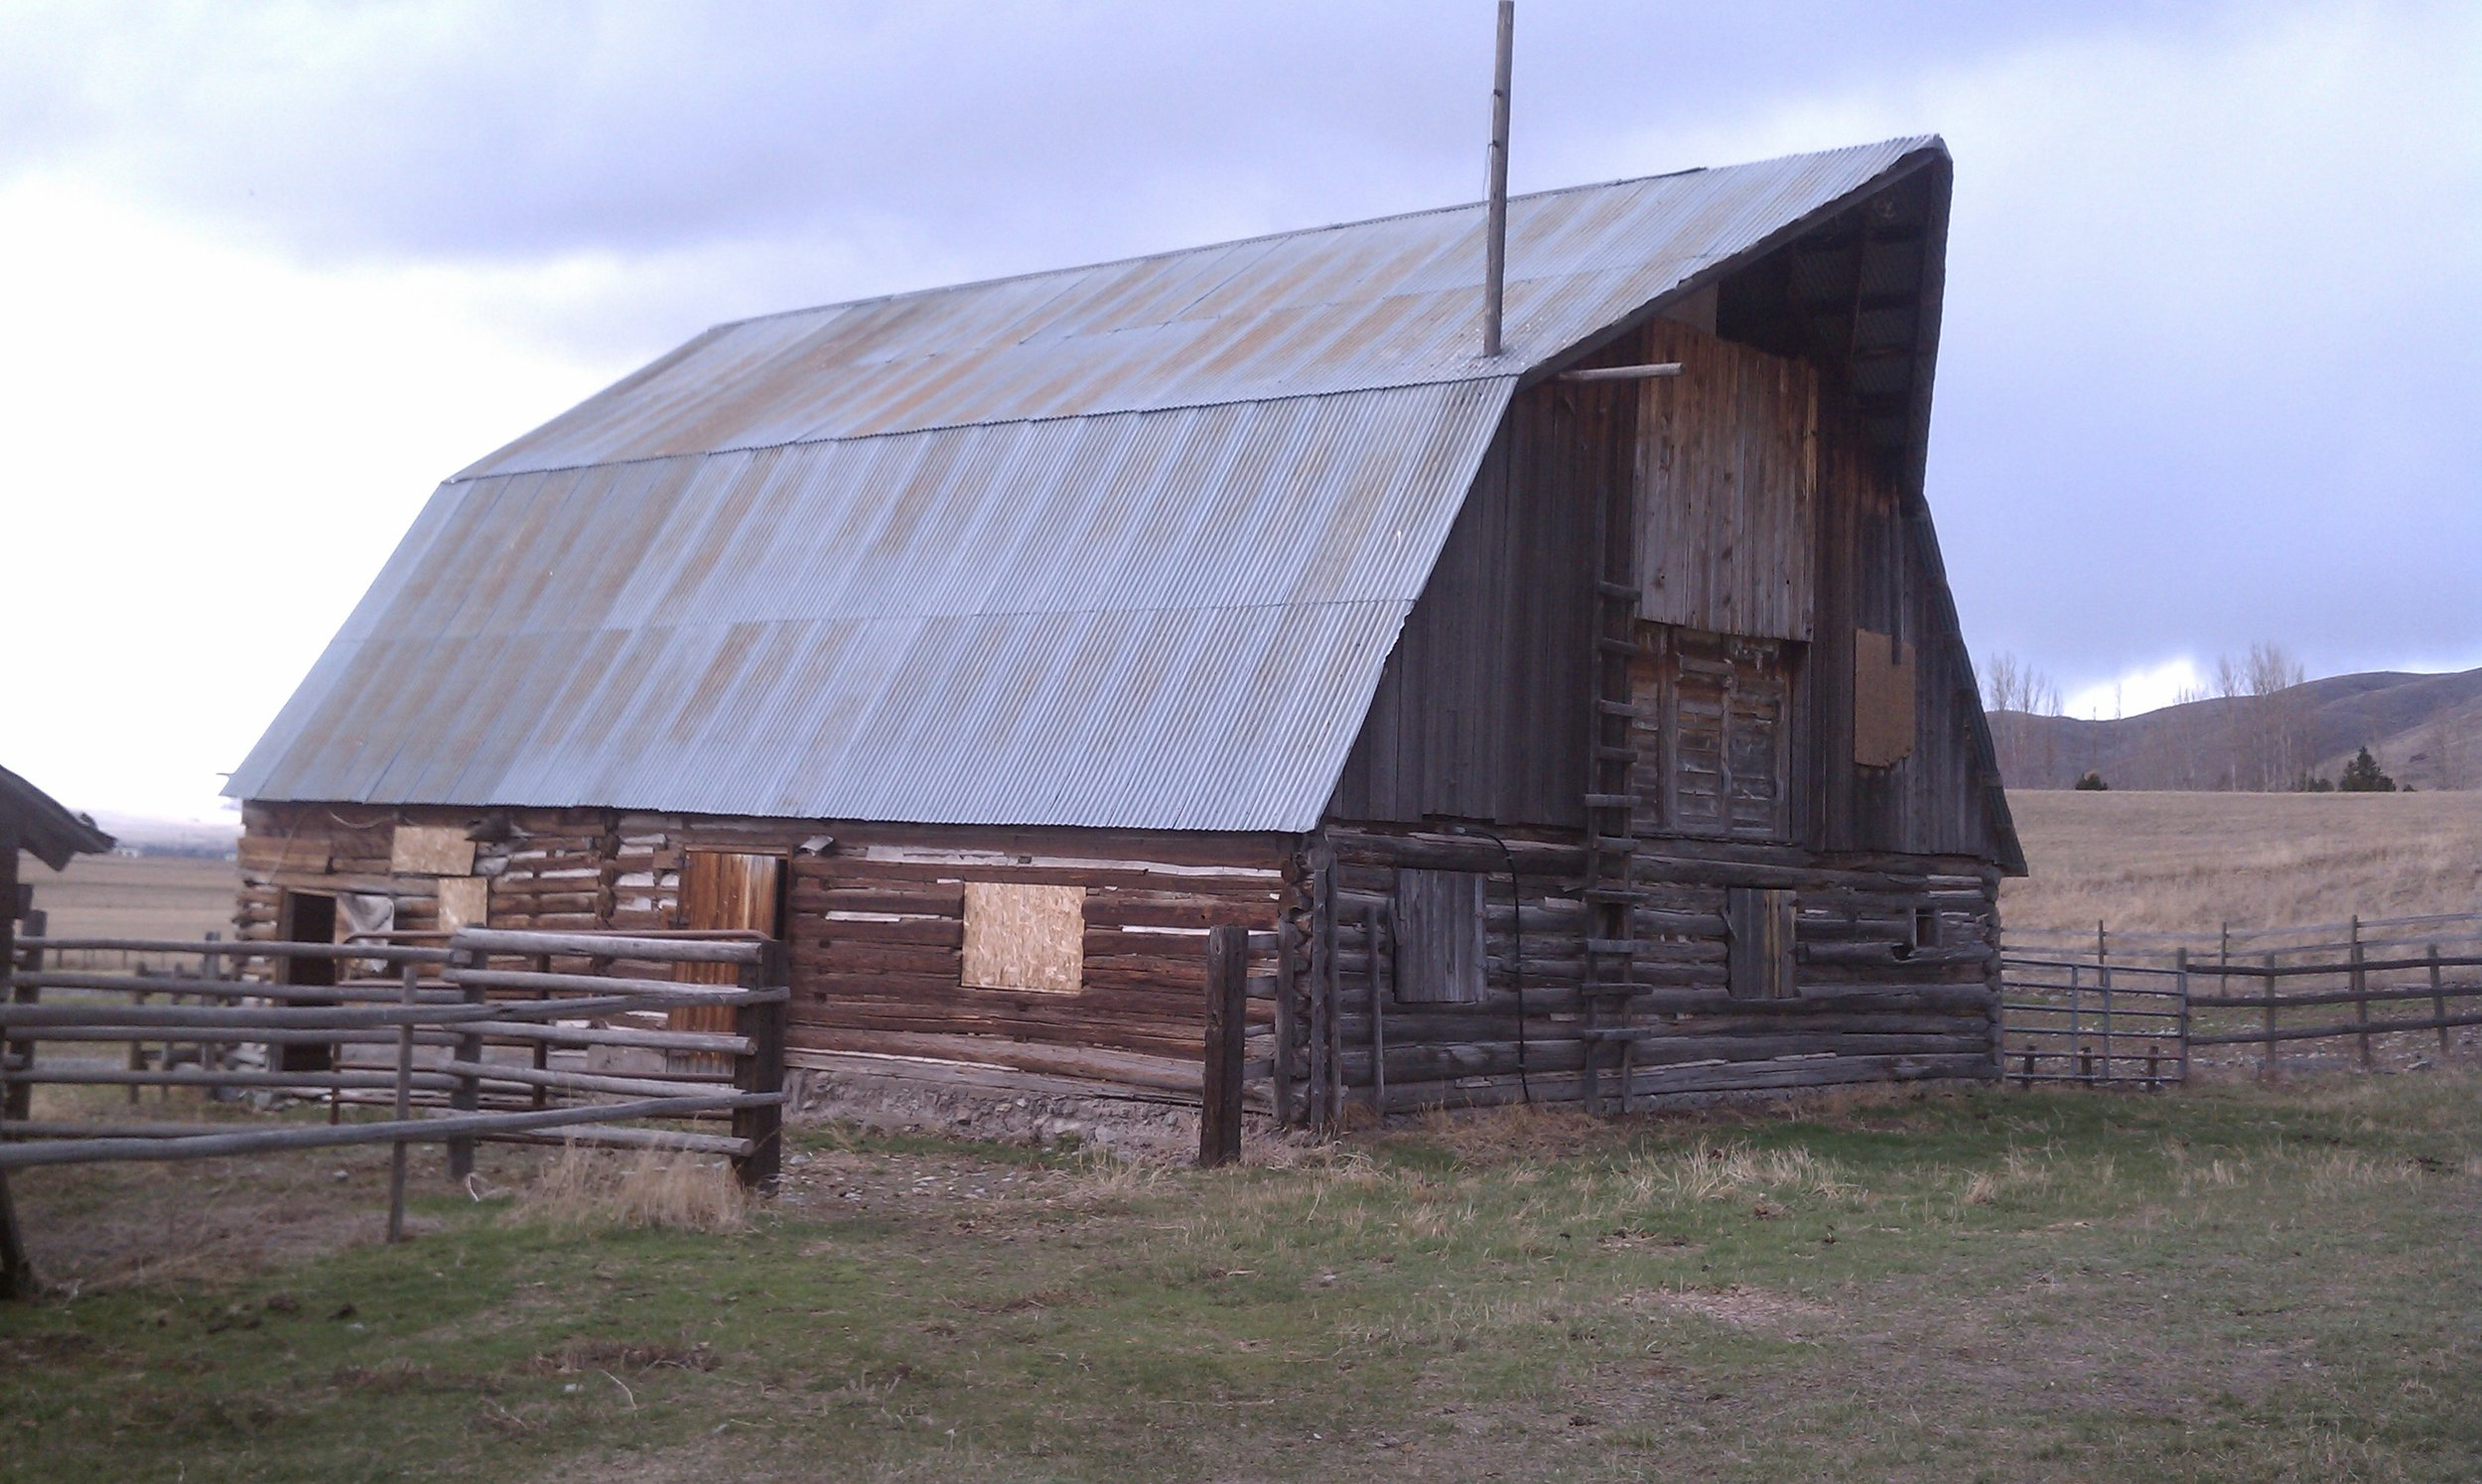 Original log barn, photo from 2002.